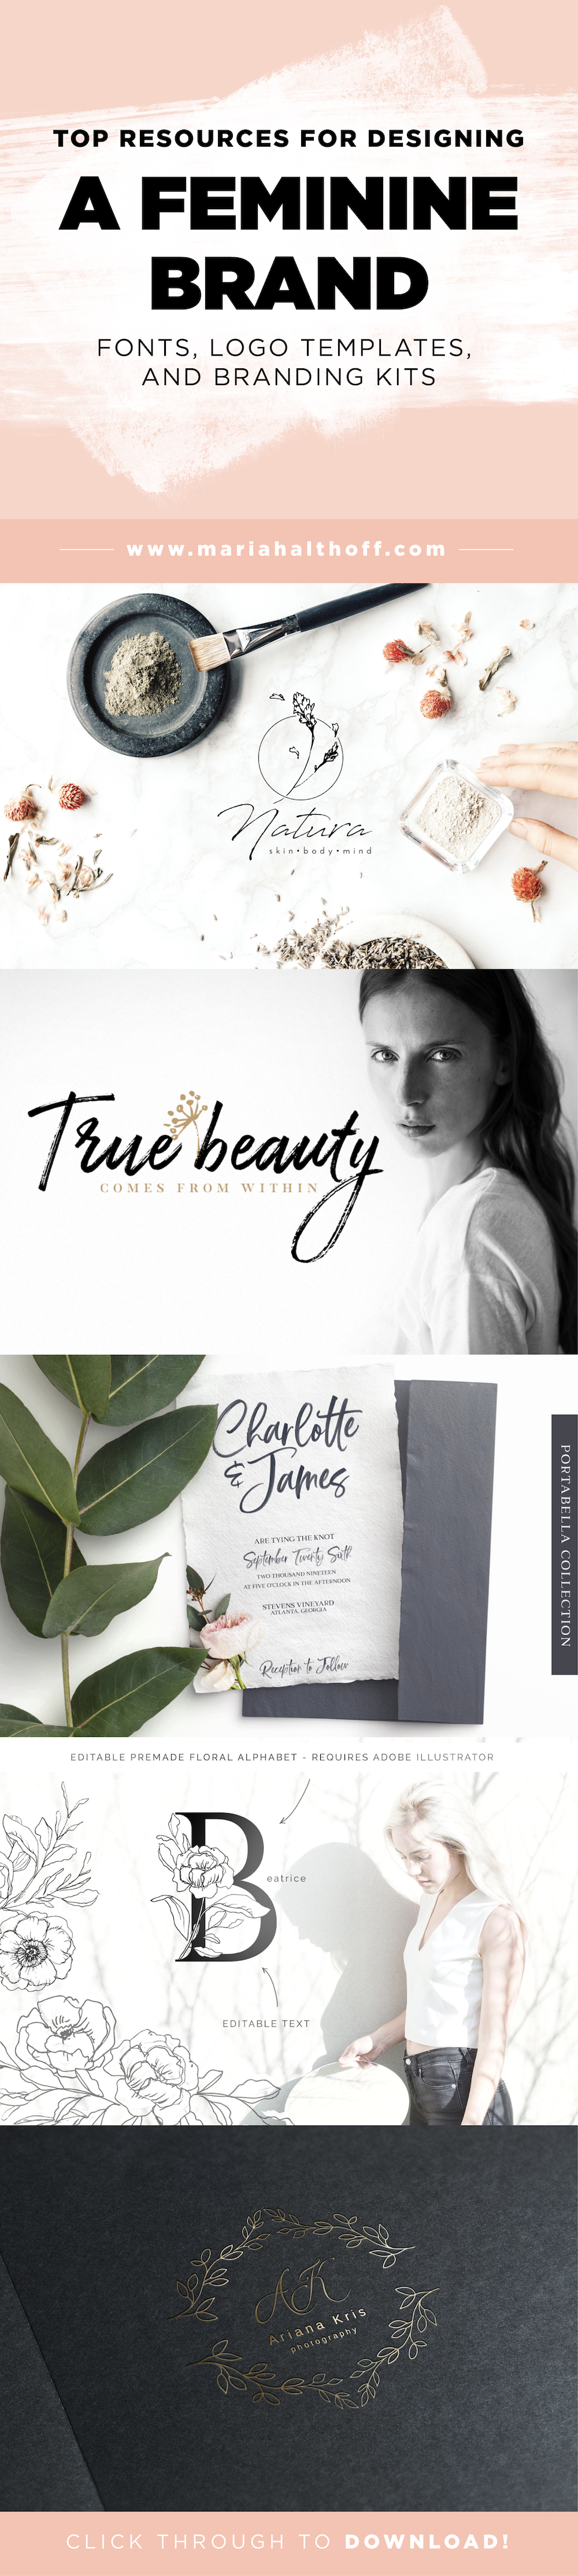 Top Design Resources For A Feminine Brand – If you're working on designing a brand that feels feminine, chic, beautiful, and delicate, look no further! This post is packed with my favorite design resources for designing a feminine brand that I think you'll love!